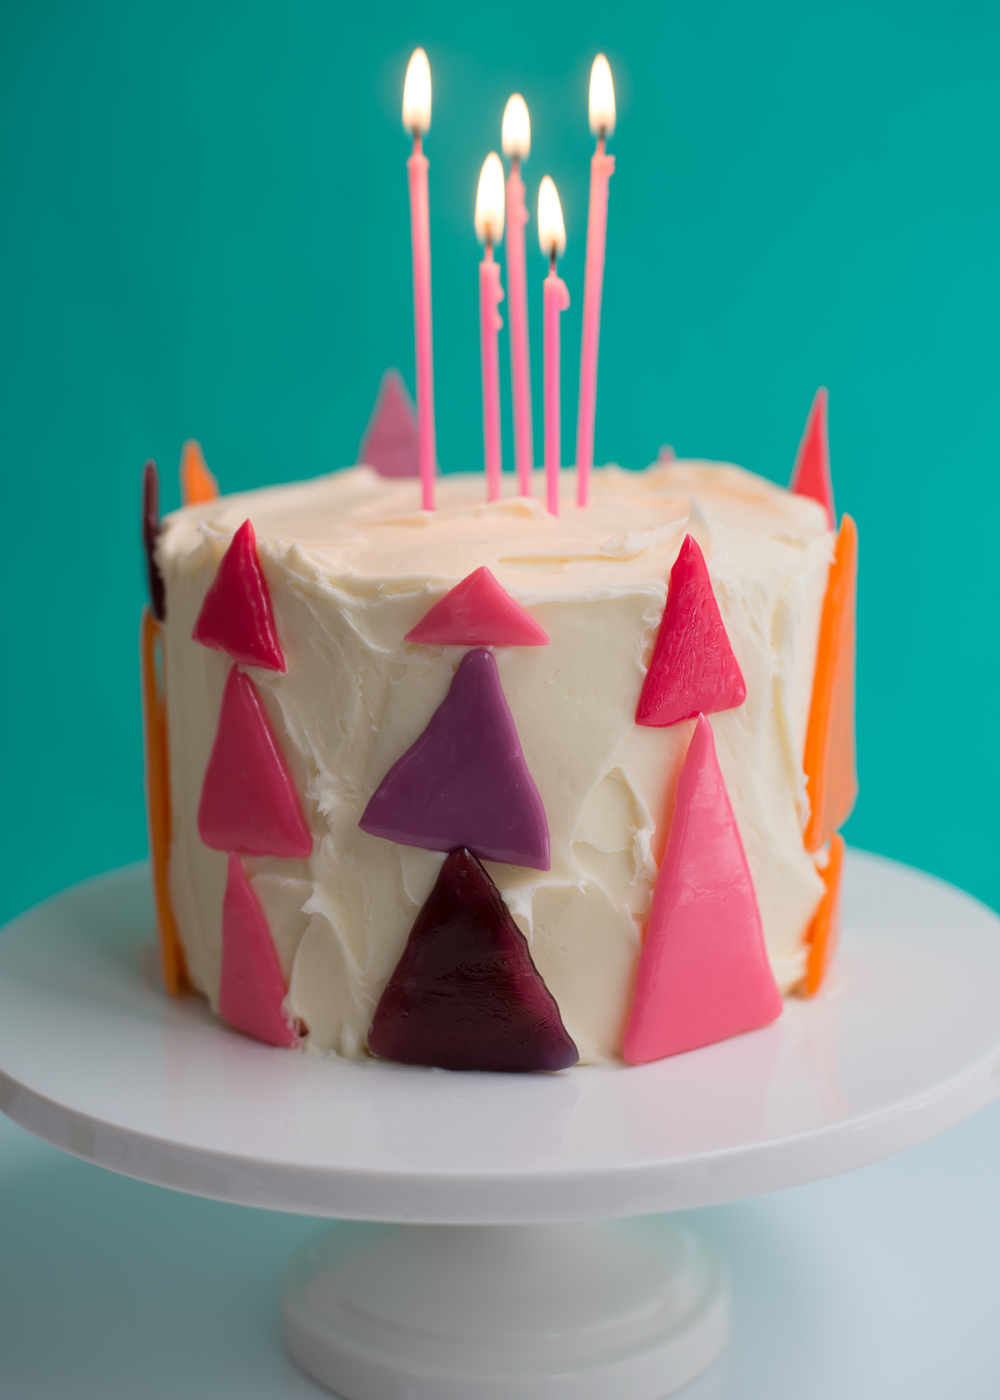 triangle-cake-decoration-candy-aisle-crafts